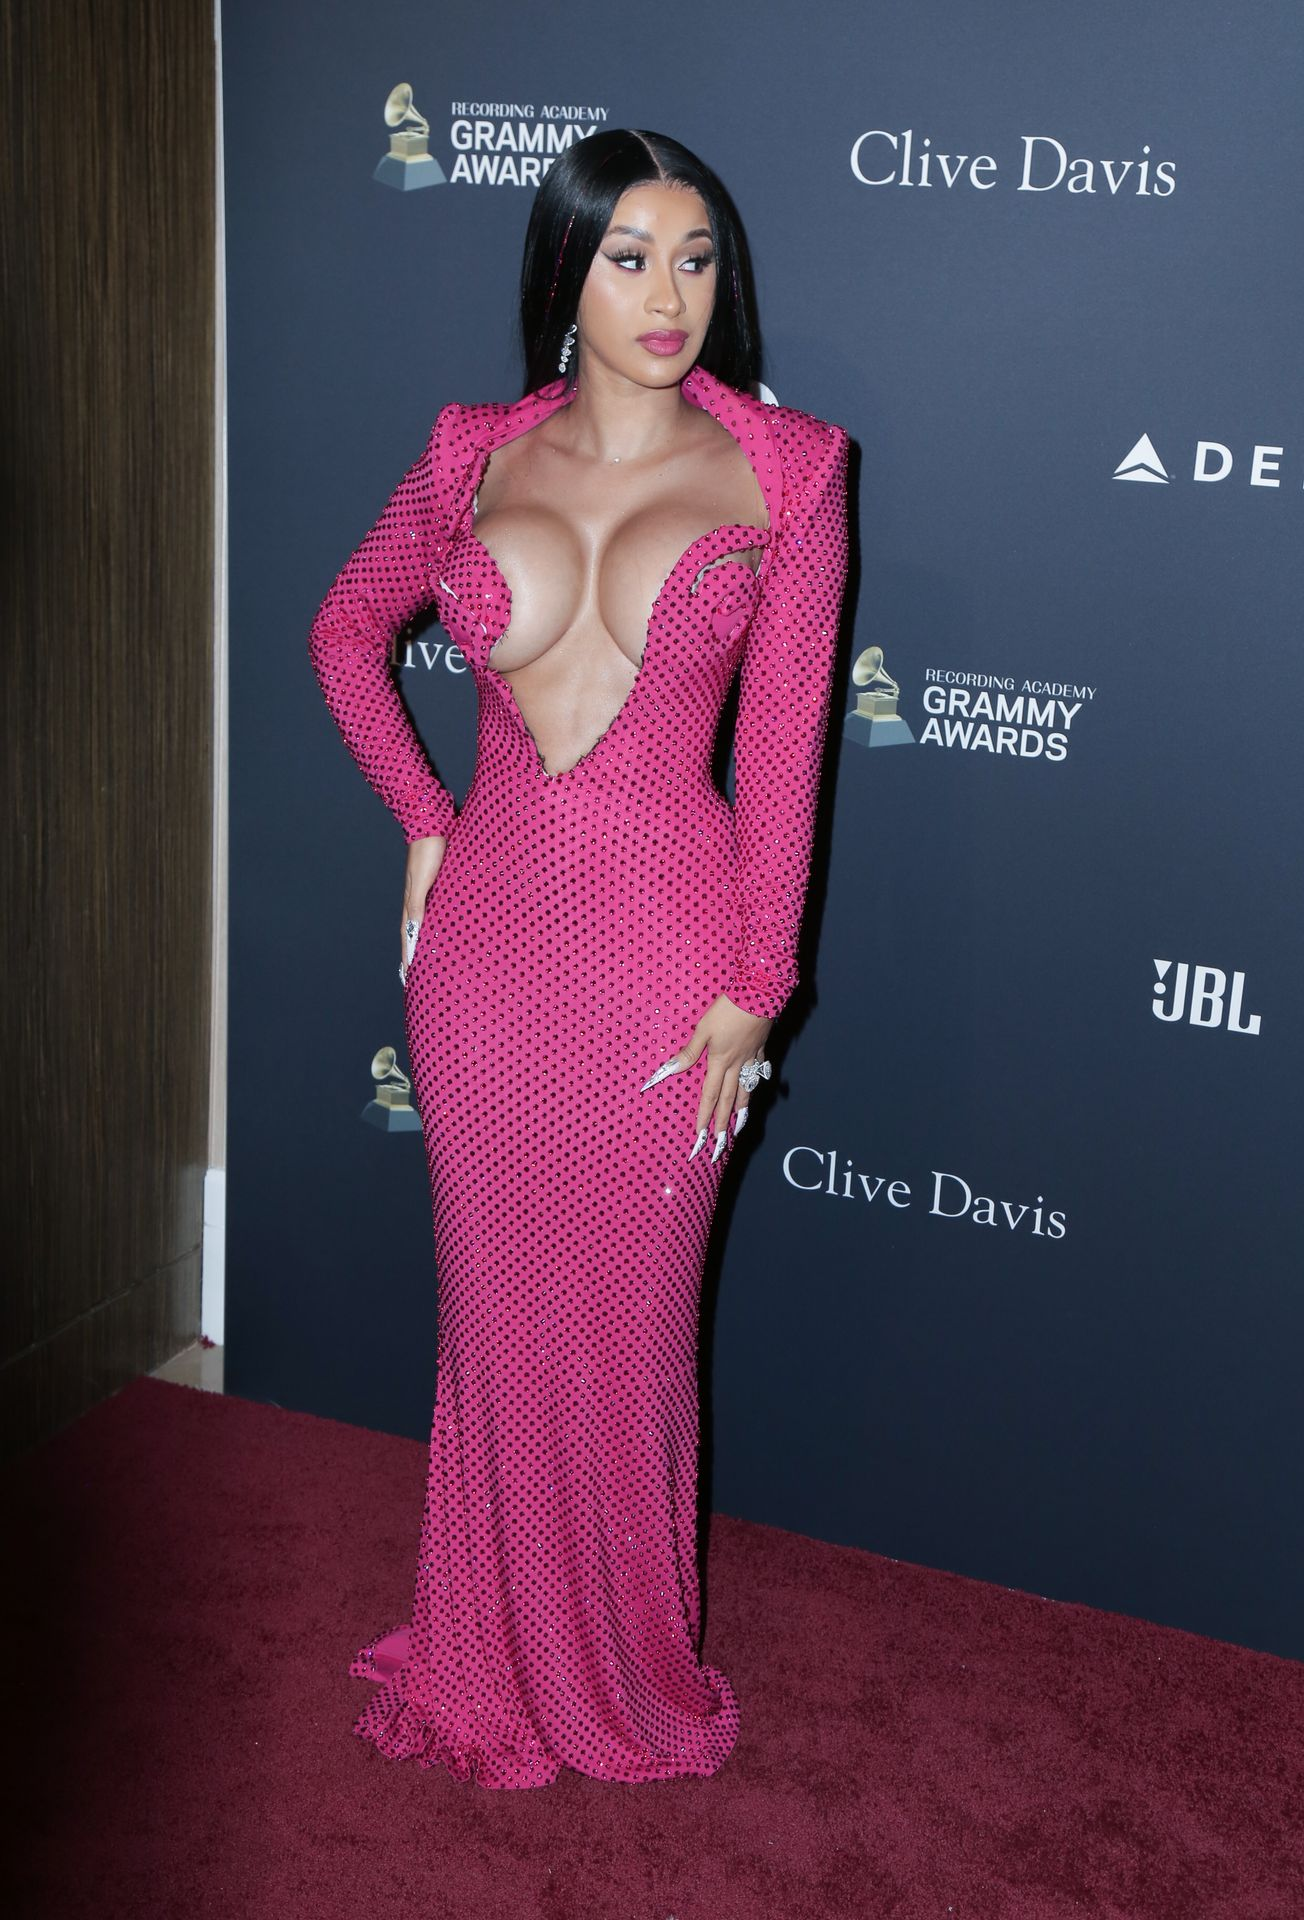 Offset Covers Cardi B's Boobs To Avoid Wardrobe Malfunction At Clive Davis Pre Grammy Party 0098